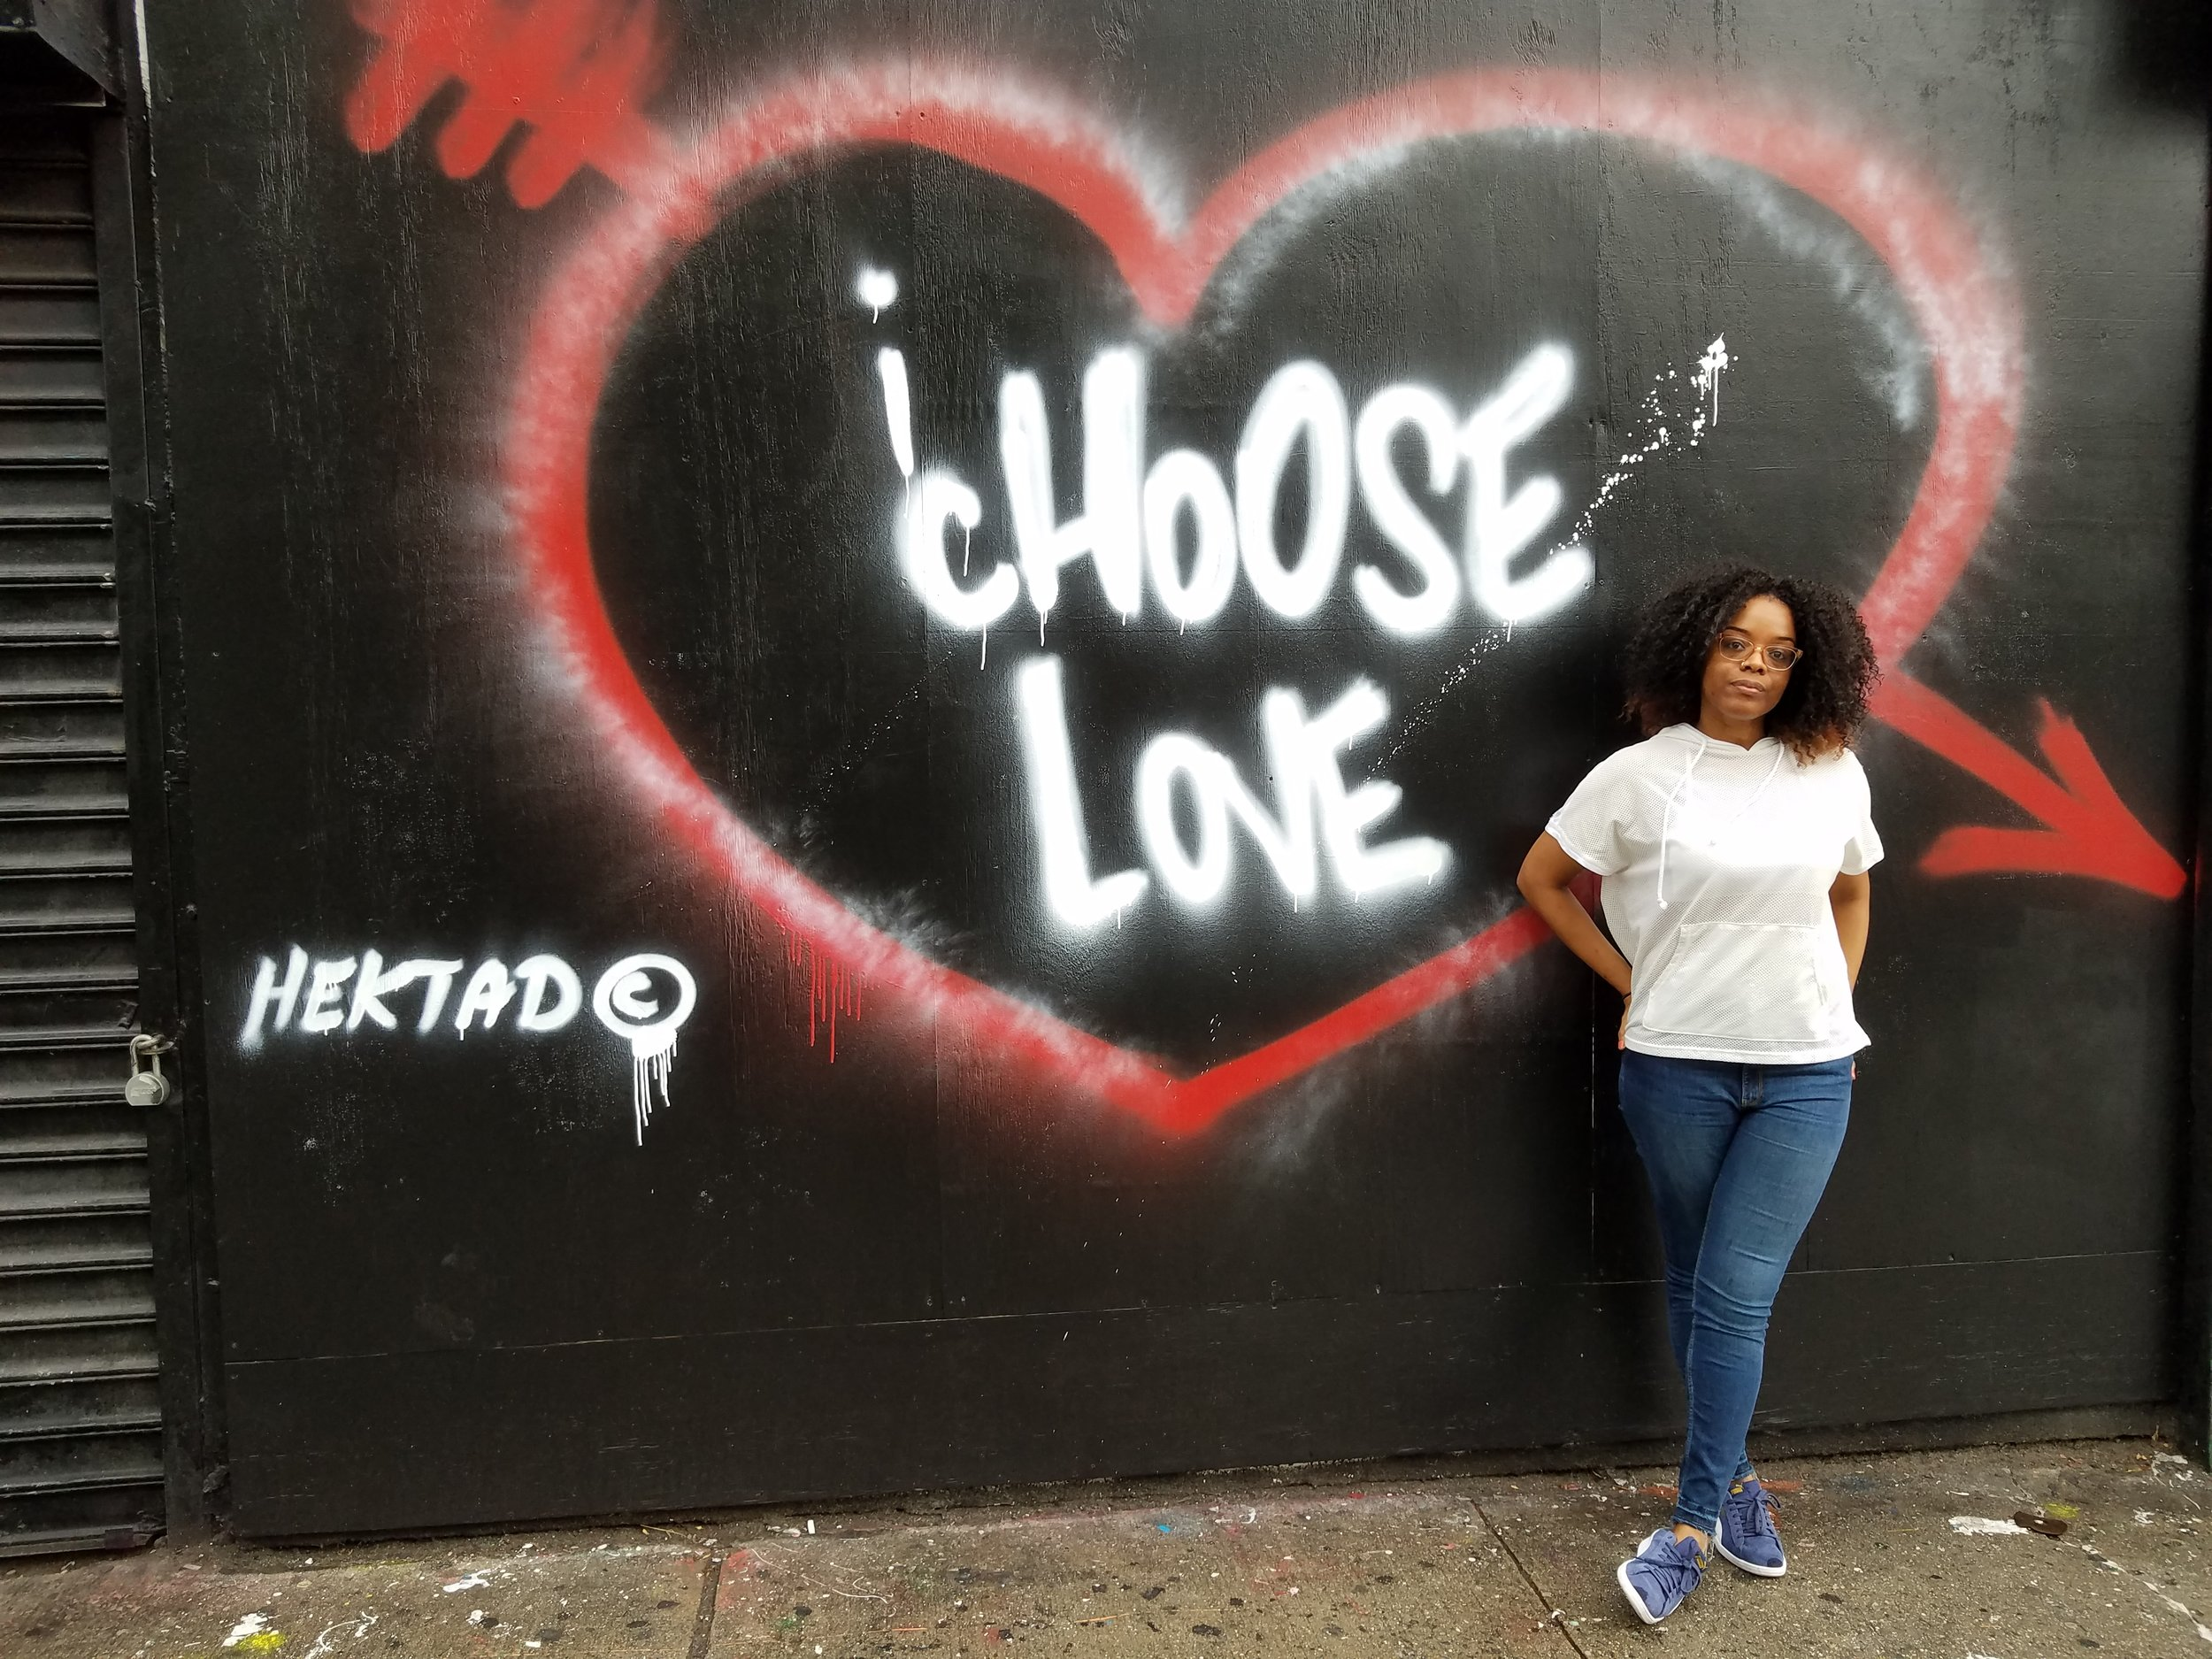 Shavonne-Hektad-I-Choose-Love-HQ.jpg